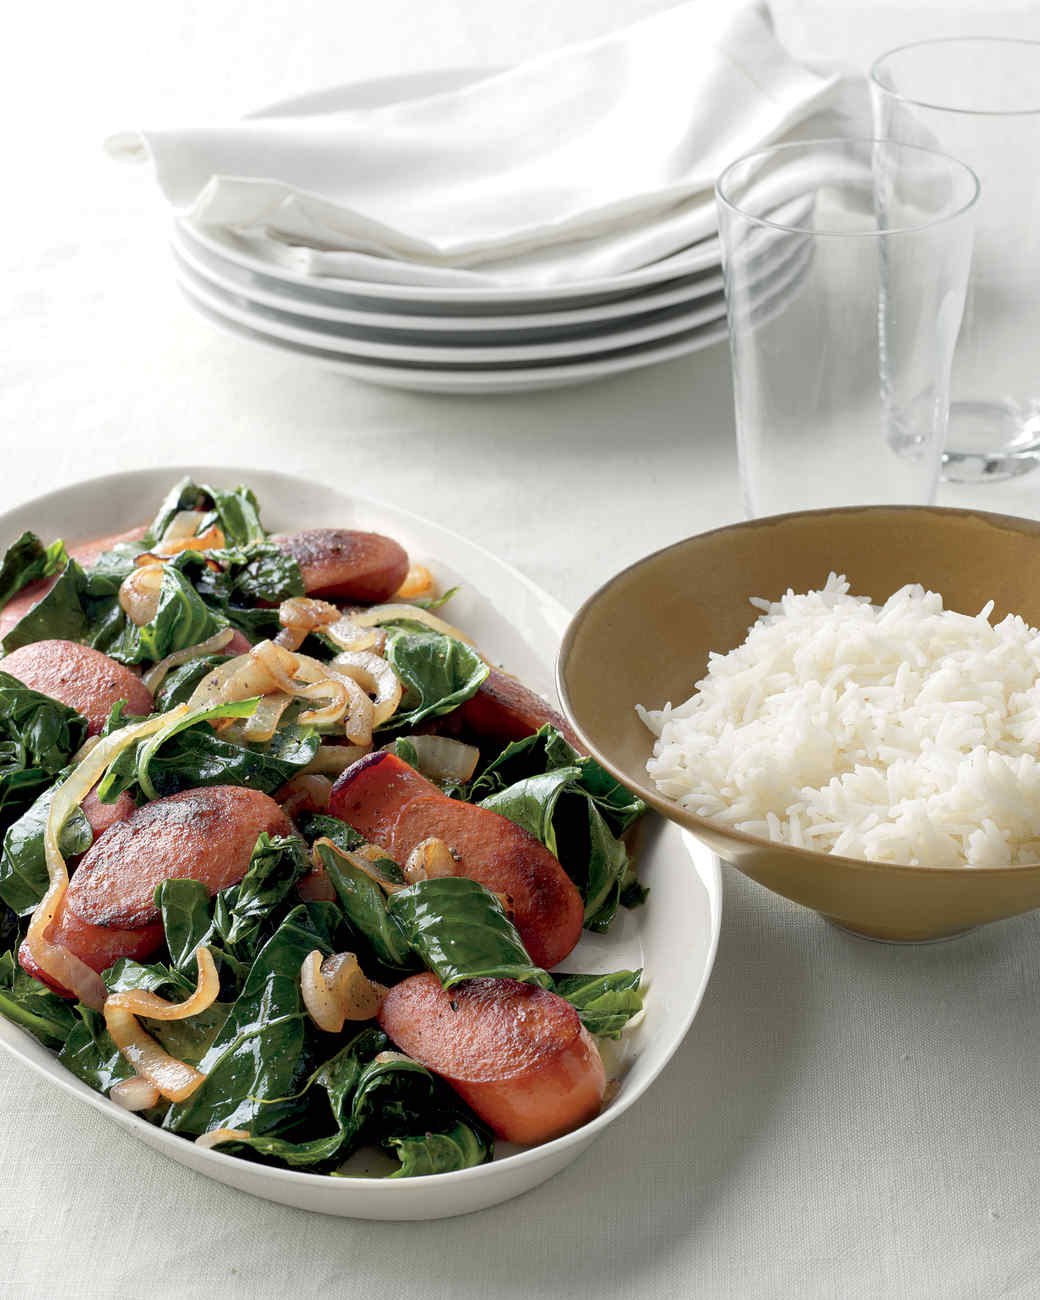 bratwurst-collards-rice-med107742.jpg